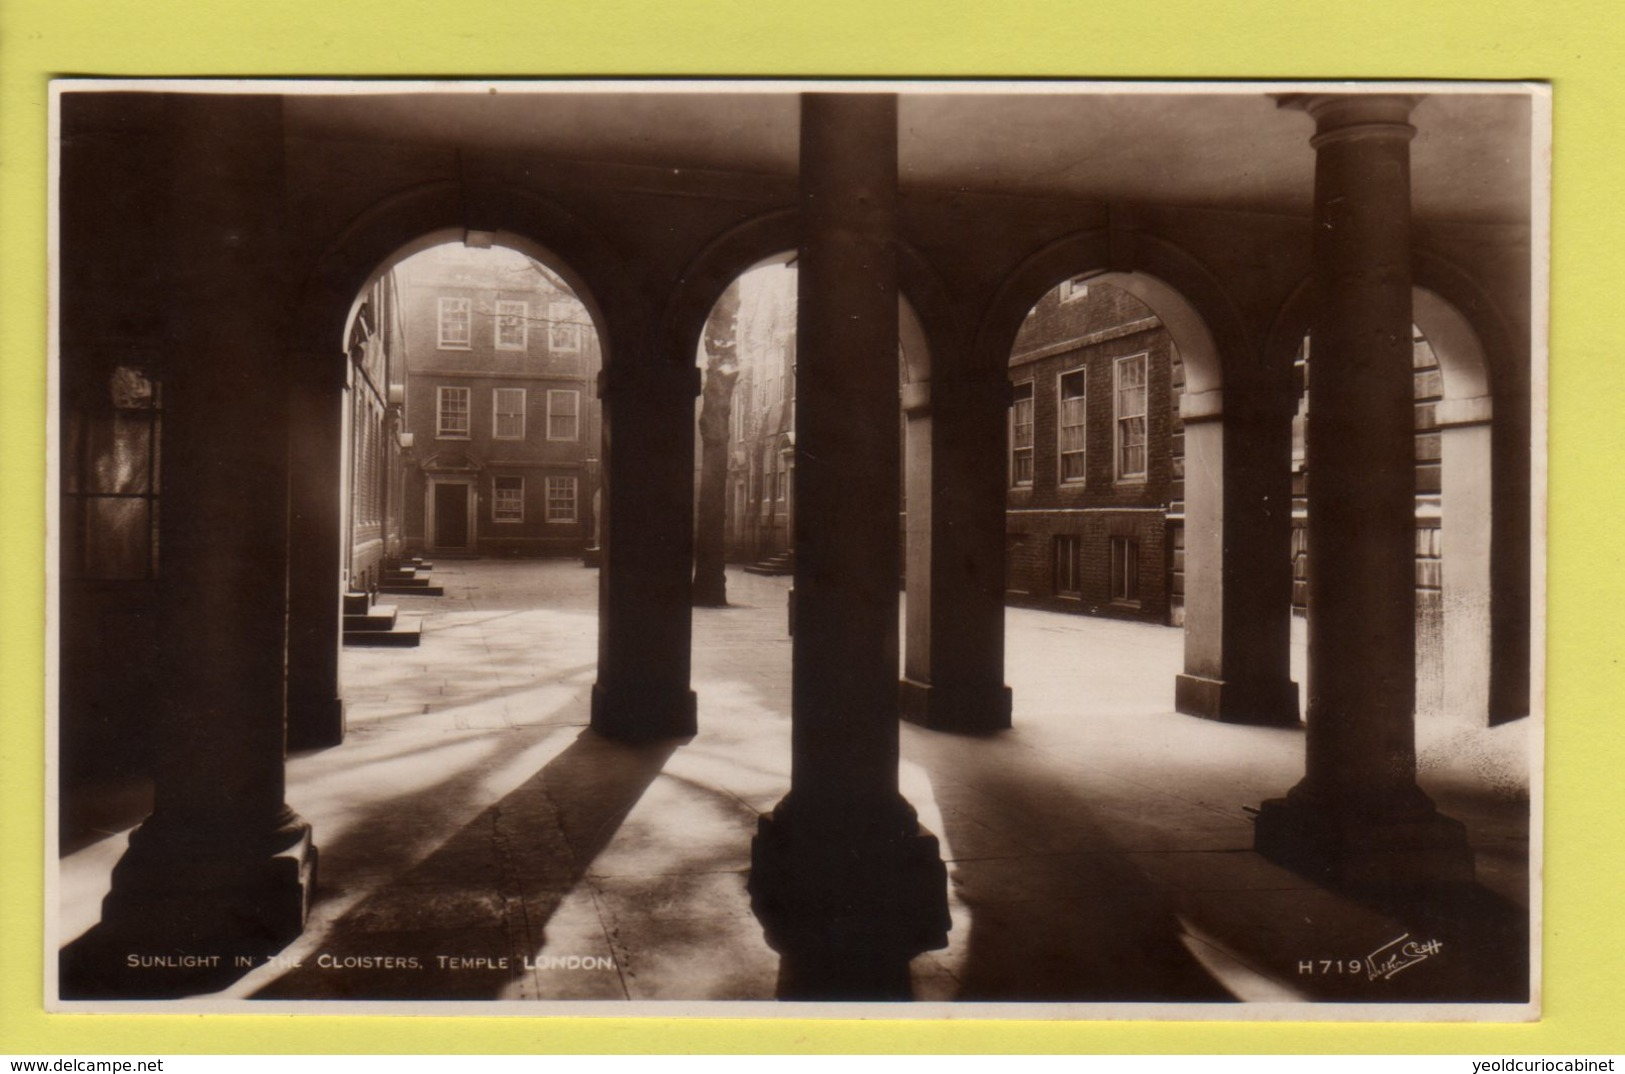 London - Temple, Sunlight In The Cloisters - Walter Scott Real Photo Postcard - Other